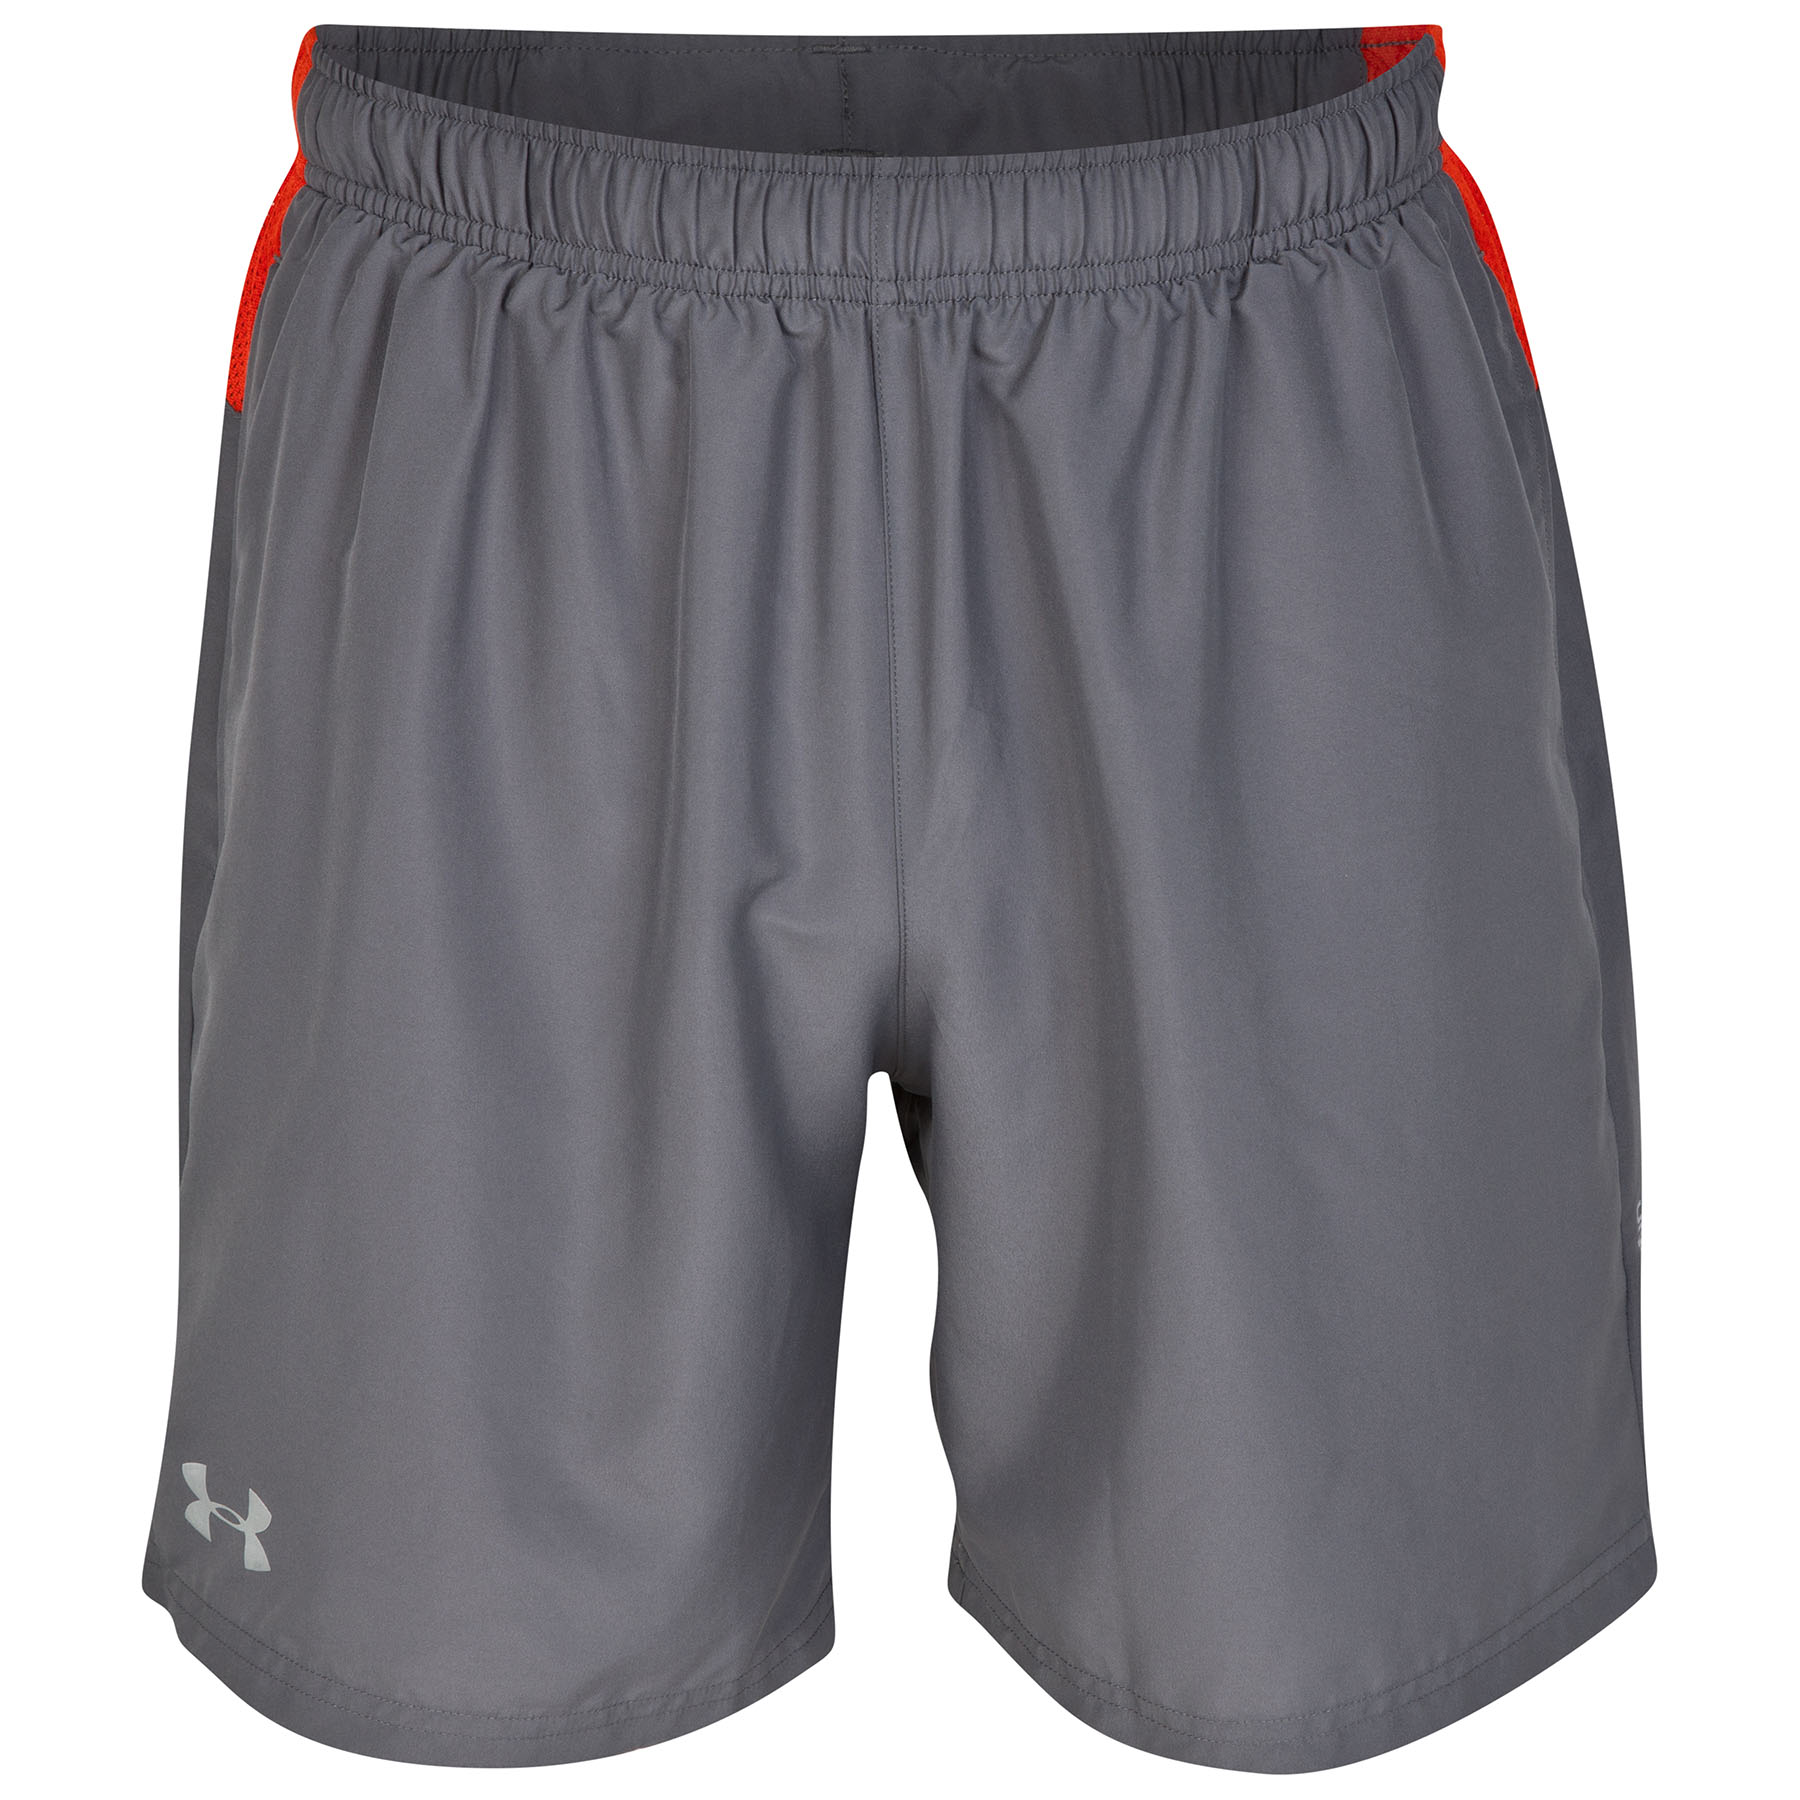 Under Armour Sixth Man 2-in-1 Shorts Lt Grey